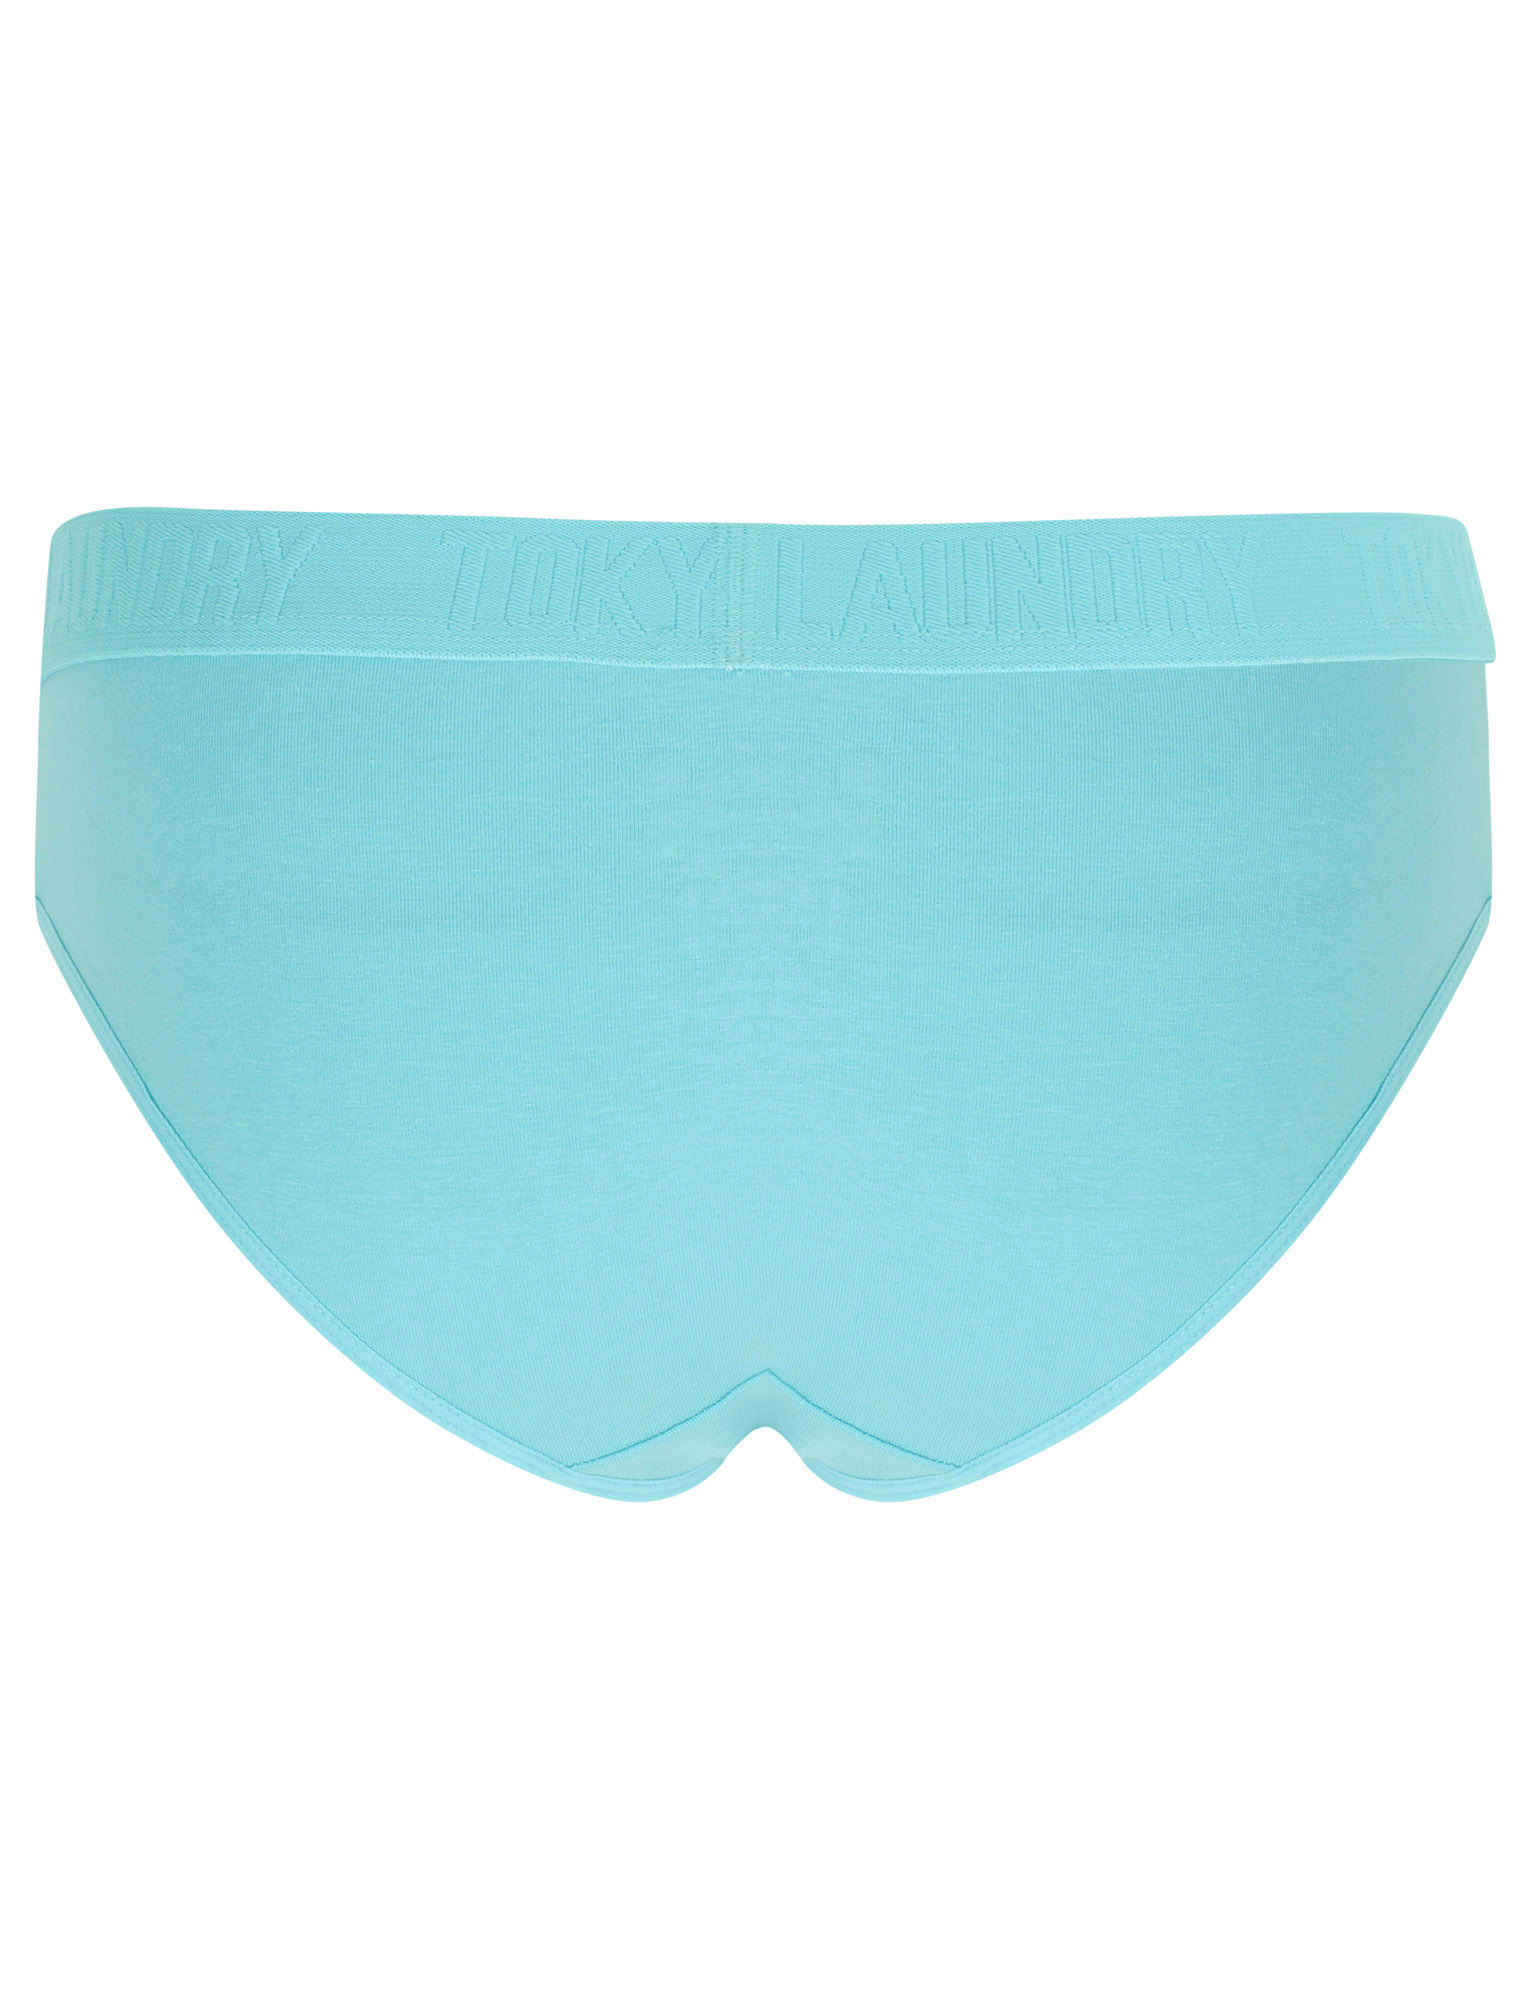 Tokyo-Laundry-Women-039-s-5-Pack-Briefs-Knickers-Underwear-Boxers-Elasticated-Waist thumbnail 4